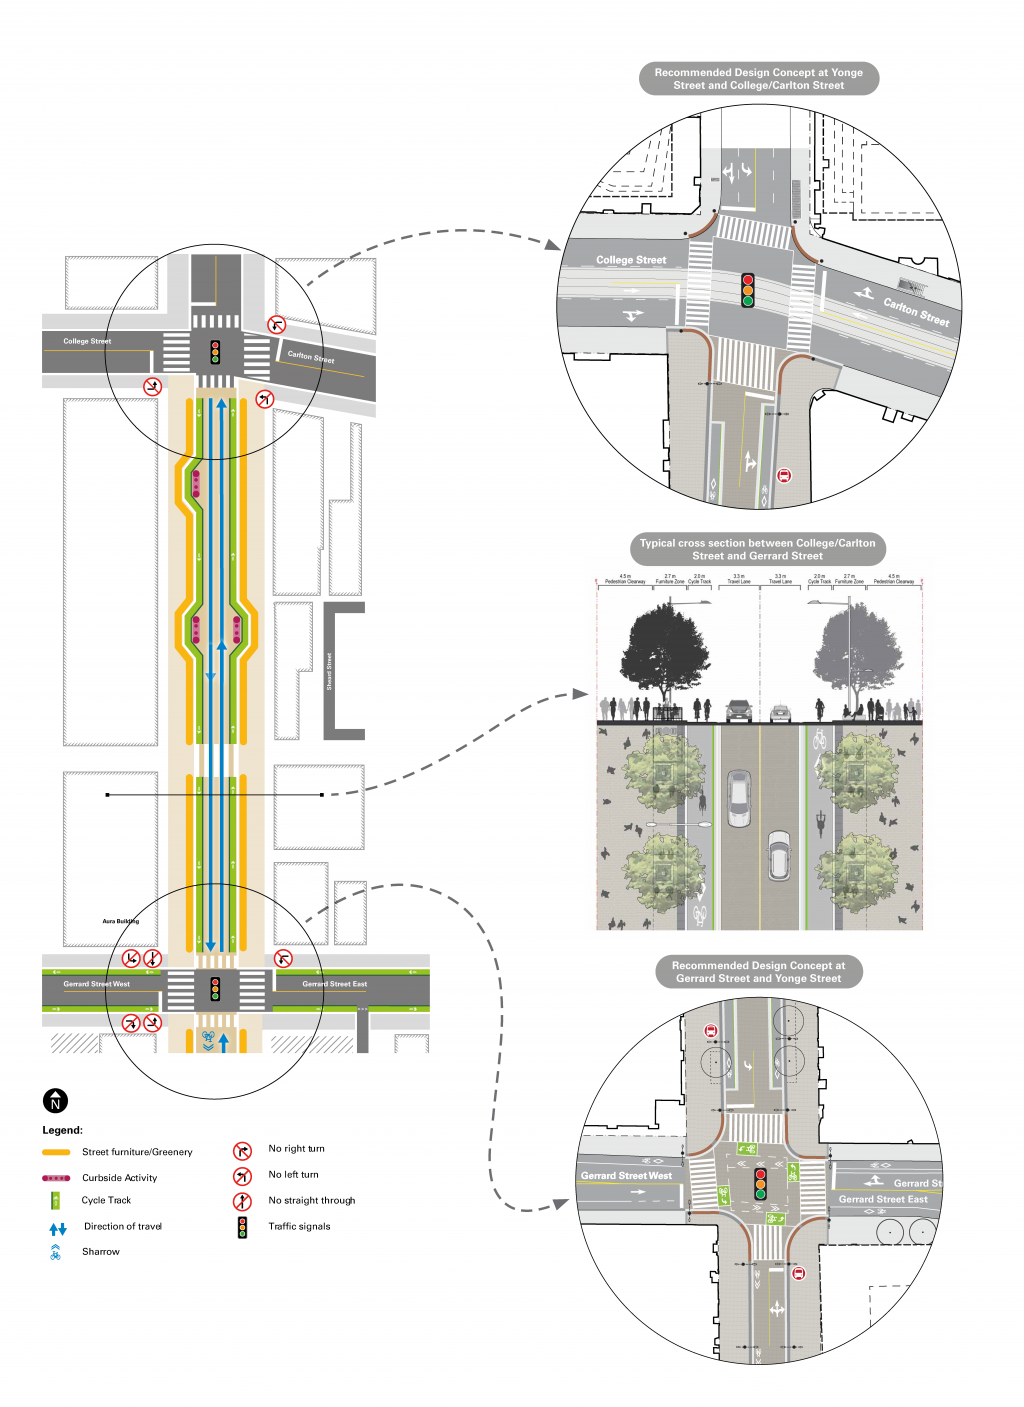 Plan and cross section for College Street to Gerrard Street